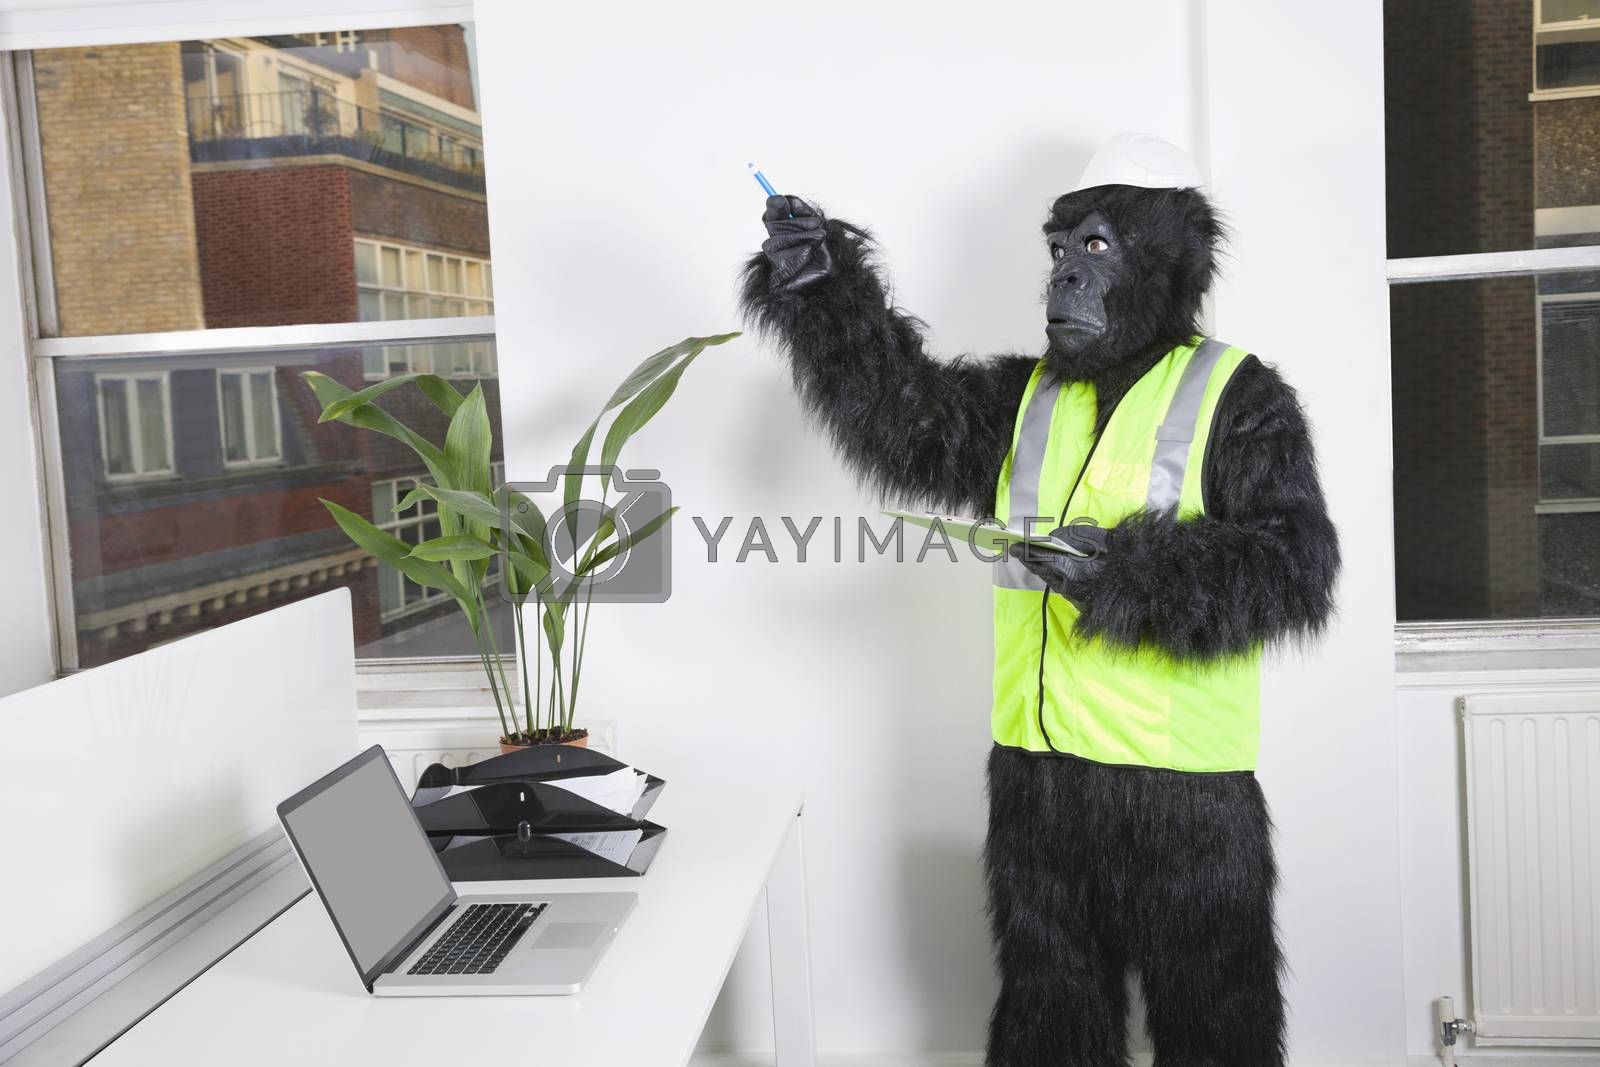 Young male engineer in gorilla costume and safety wear pointing towards window